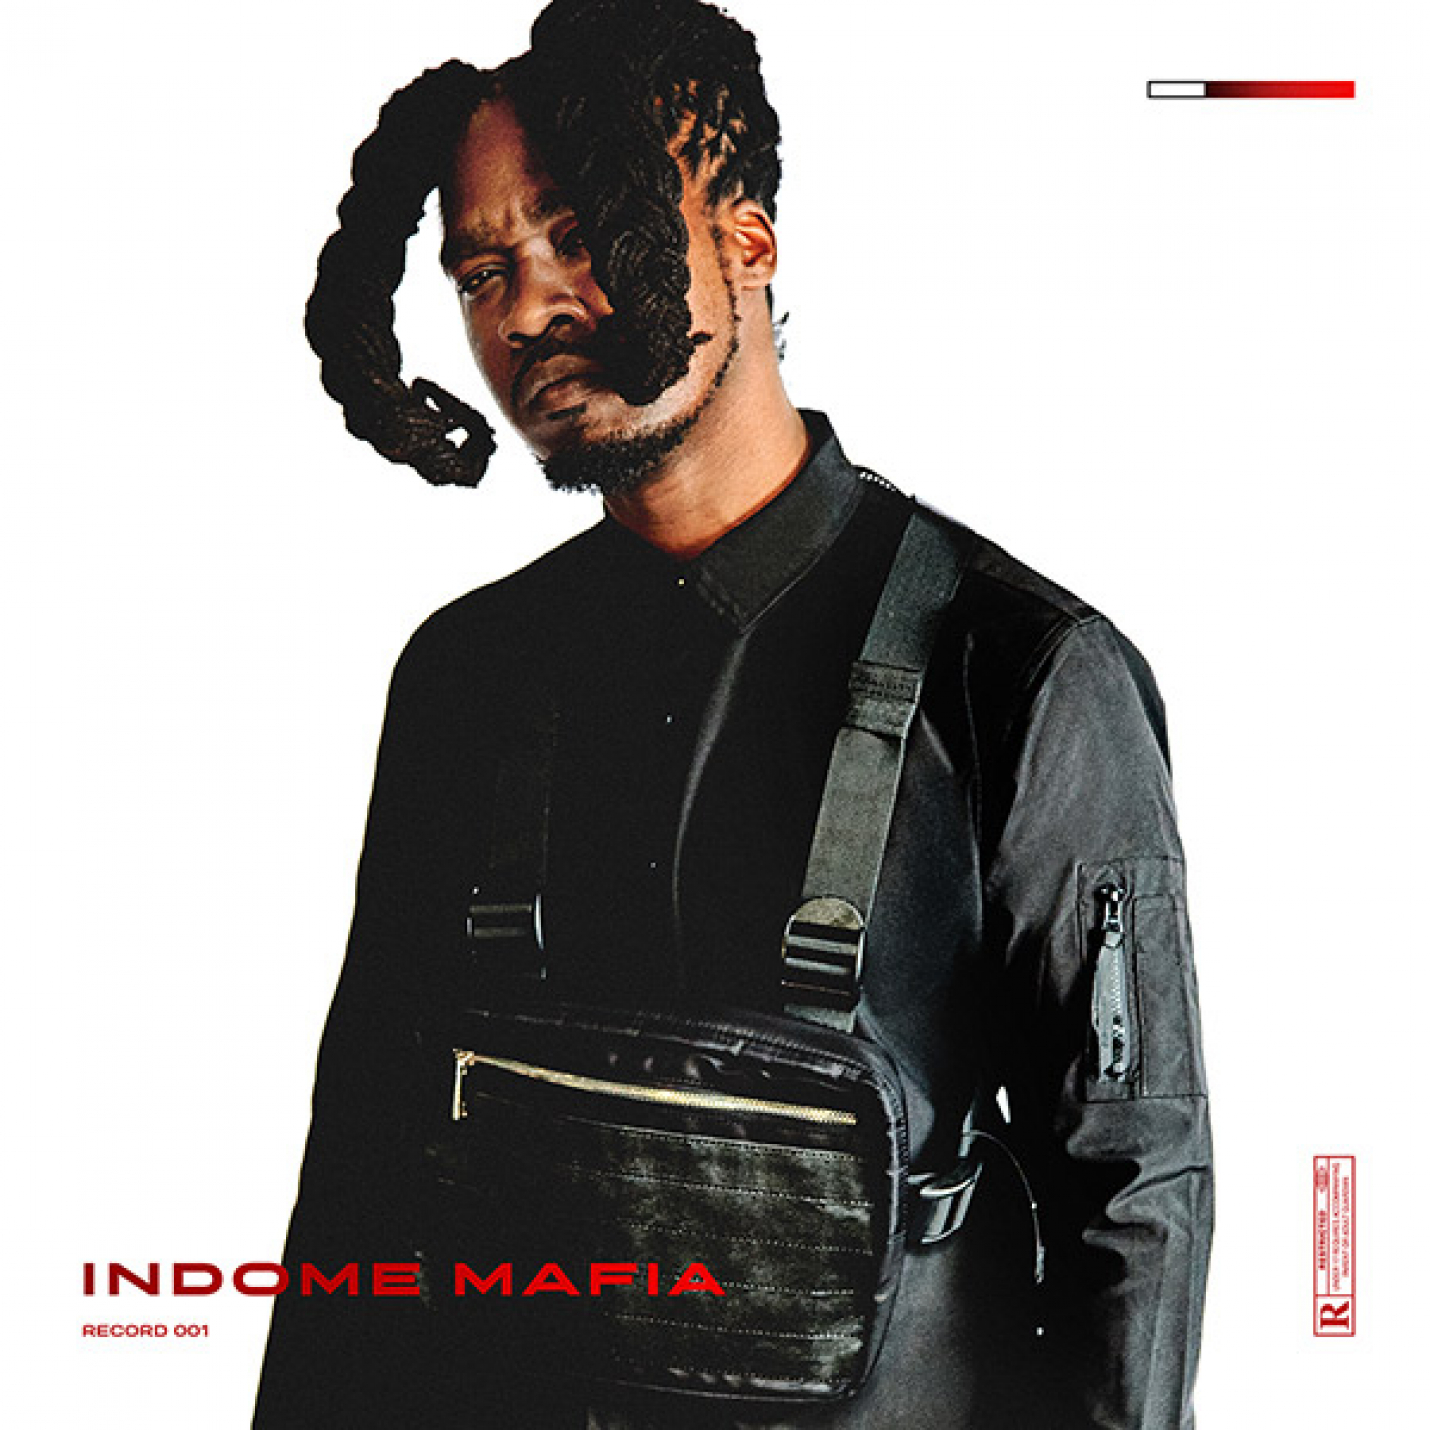 Canadian Rapper Spek Won Release New Video Titled 'Indome Mafia'